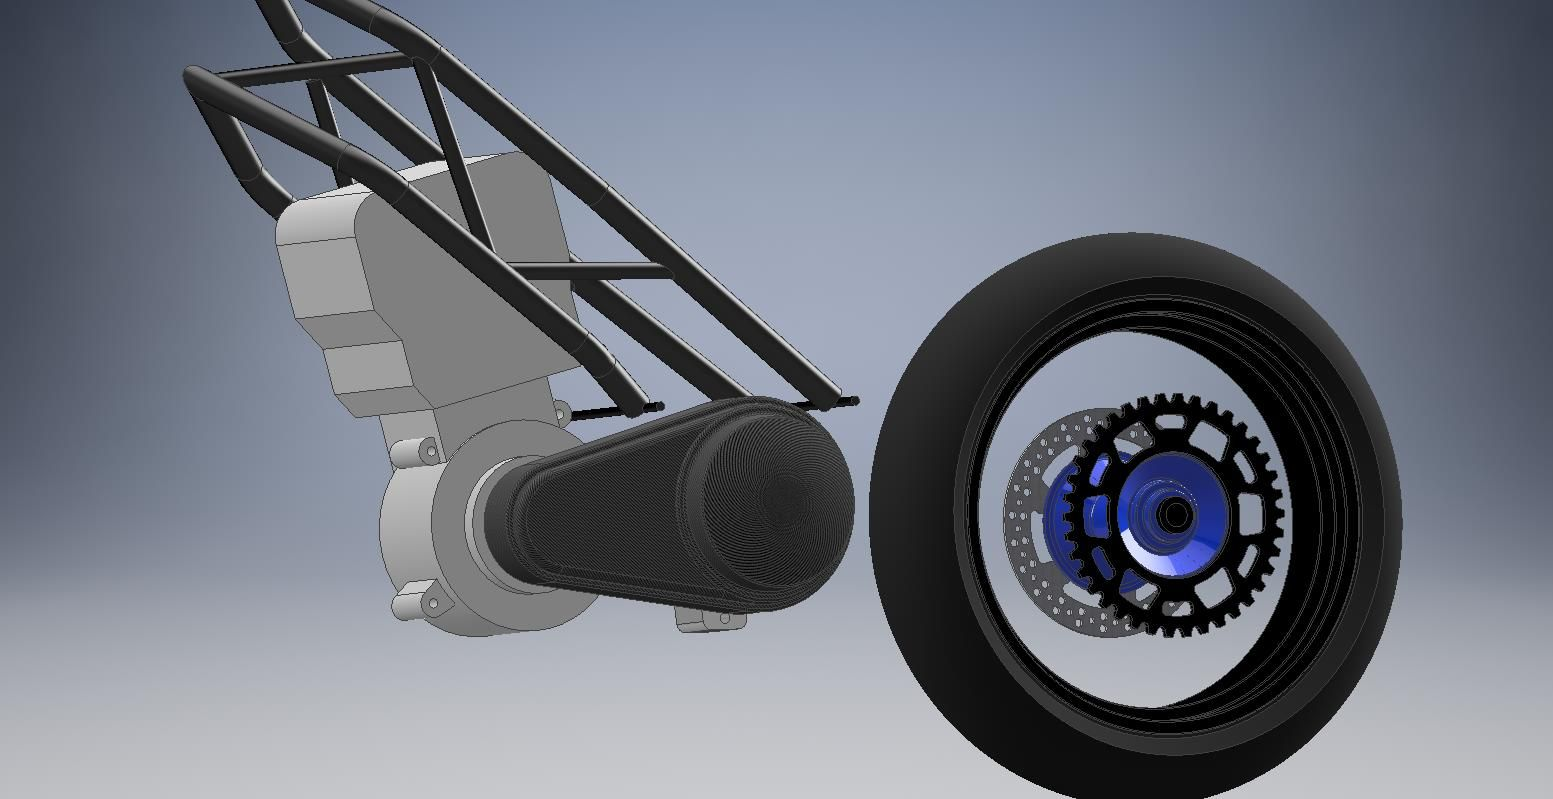 Starting up the project with some 3D CAD modeling.